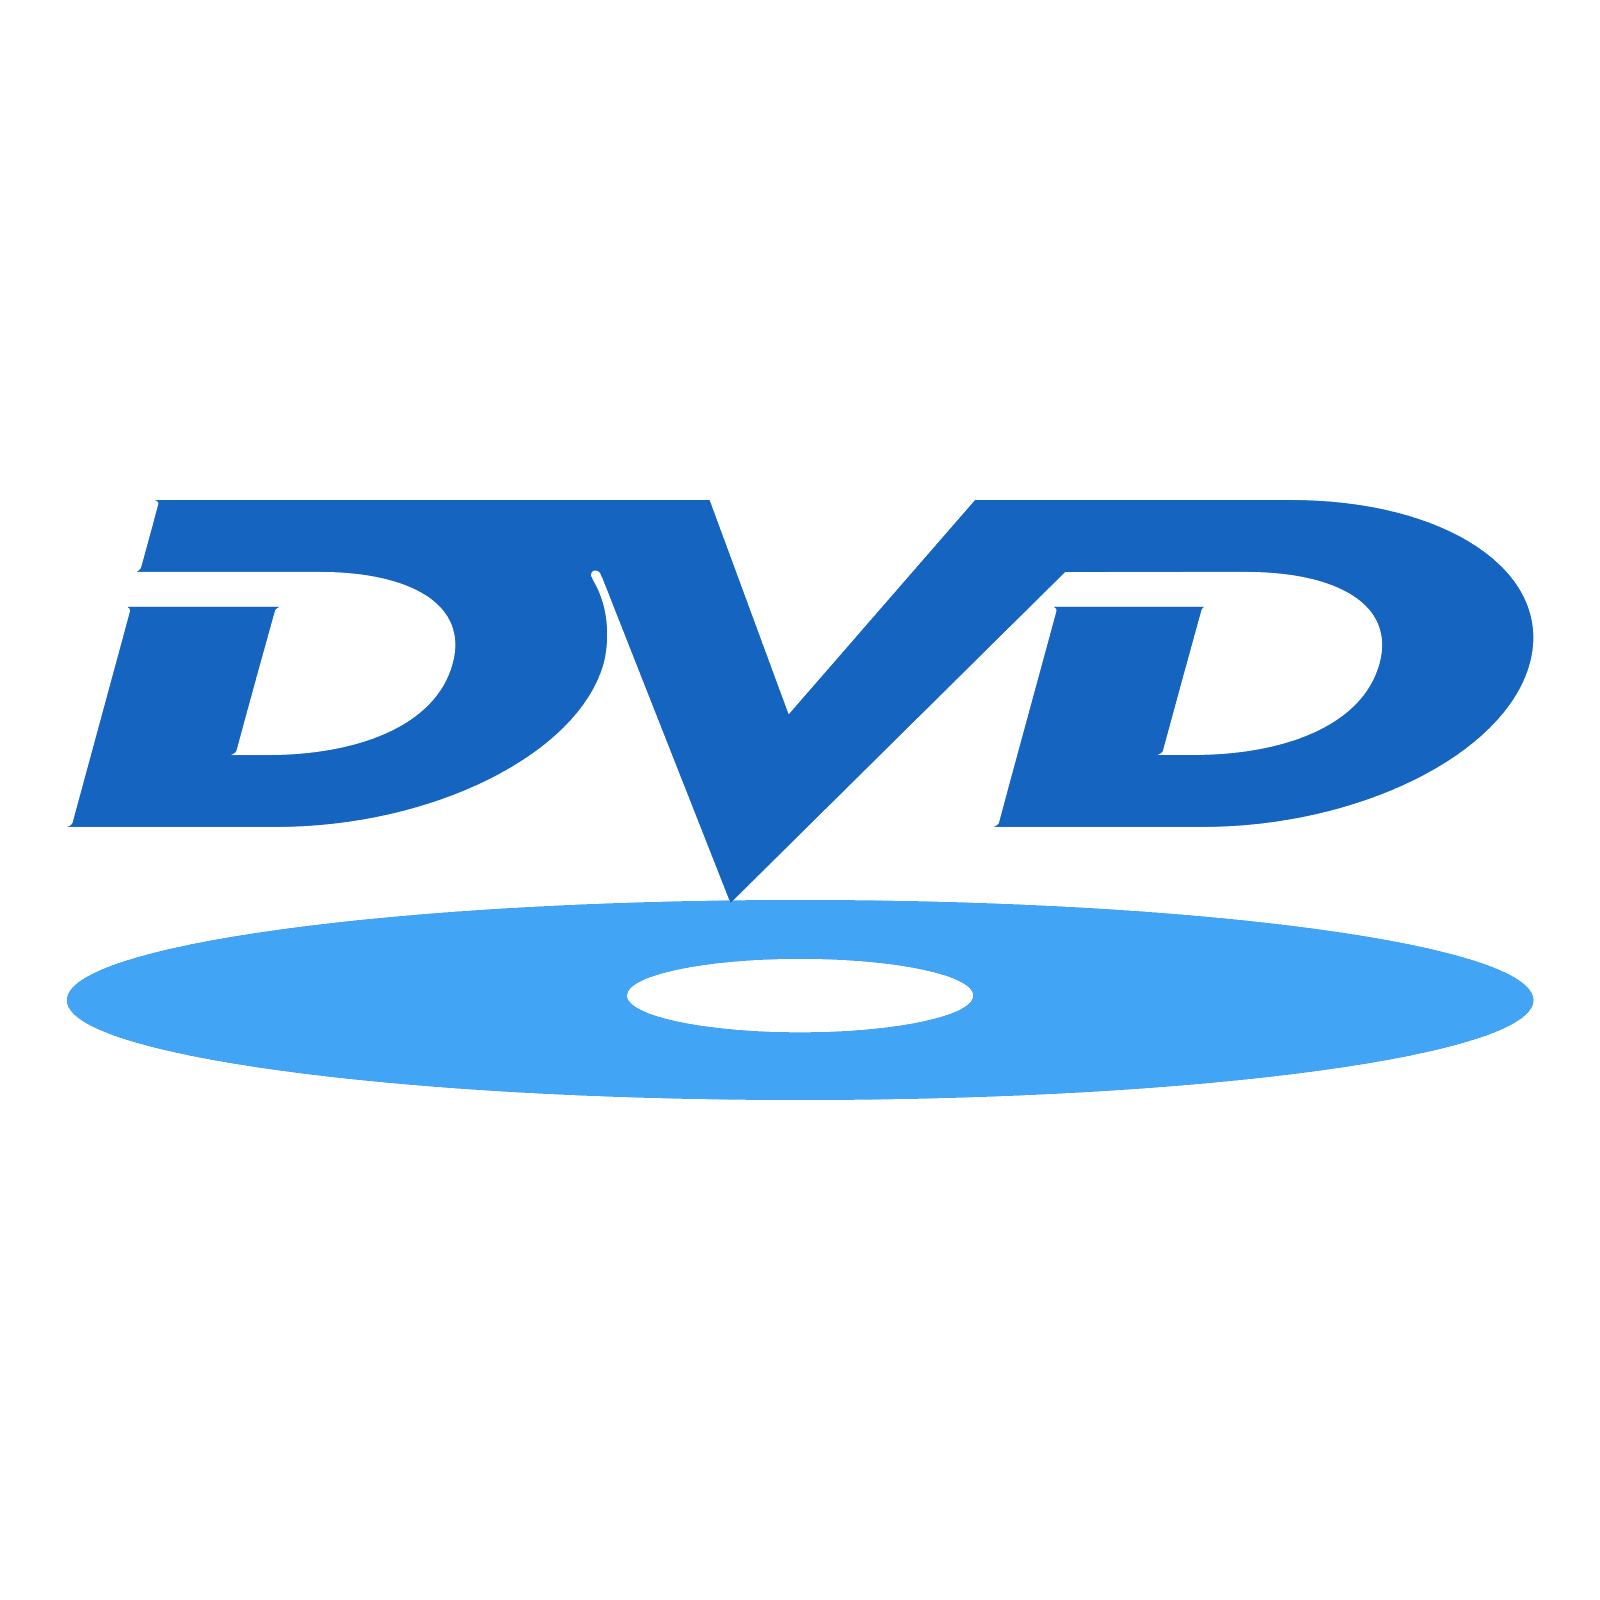 DVD PNG Transparent Images, Pictures, Photos.